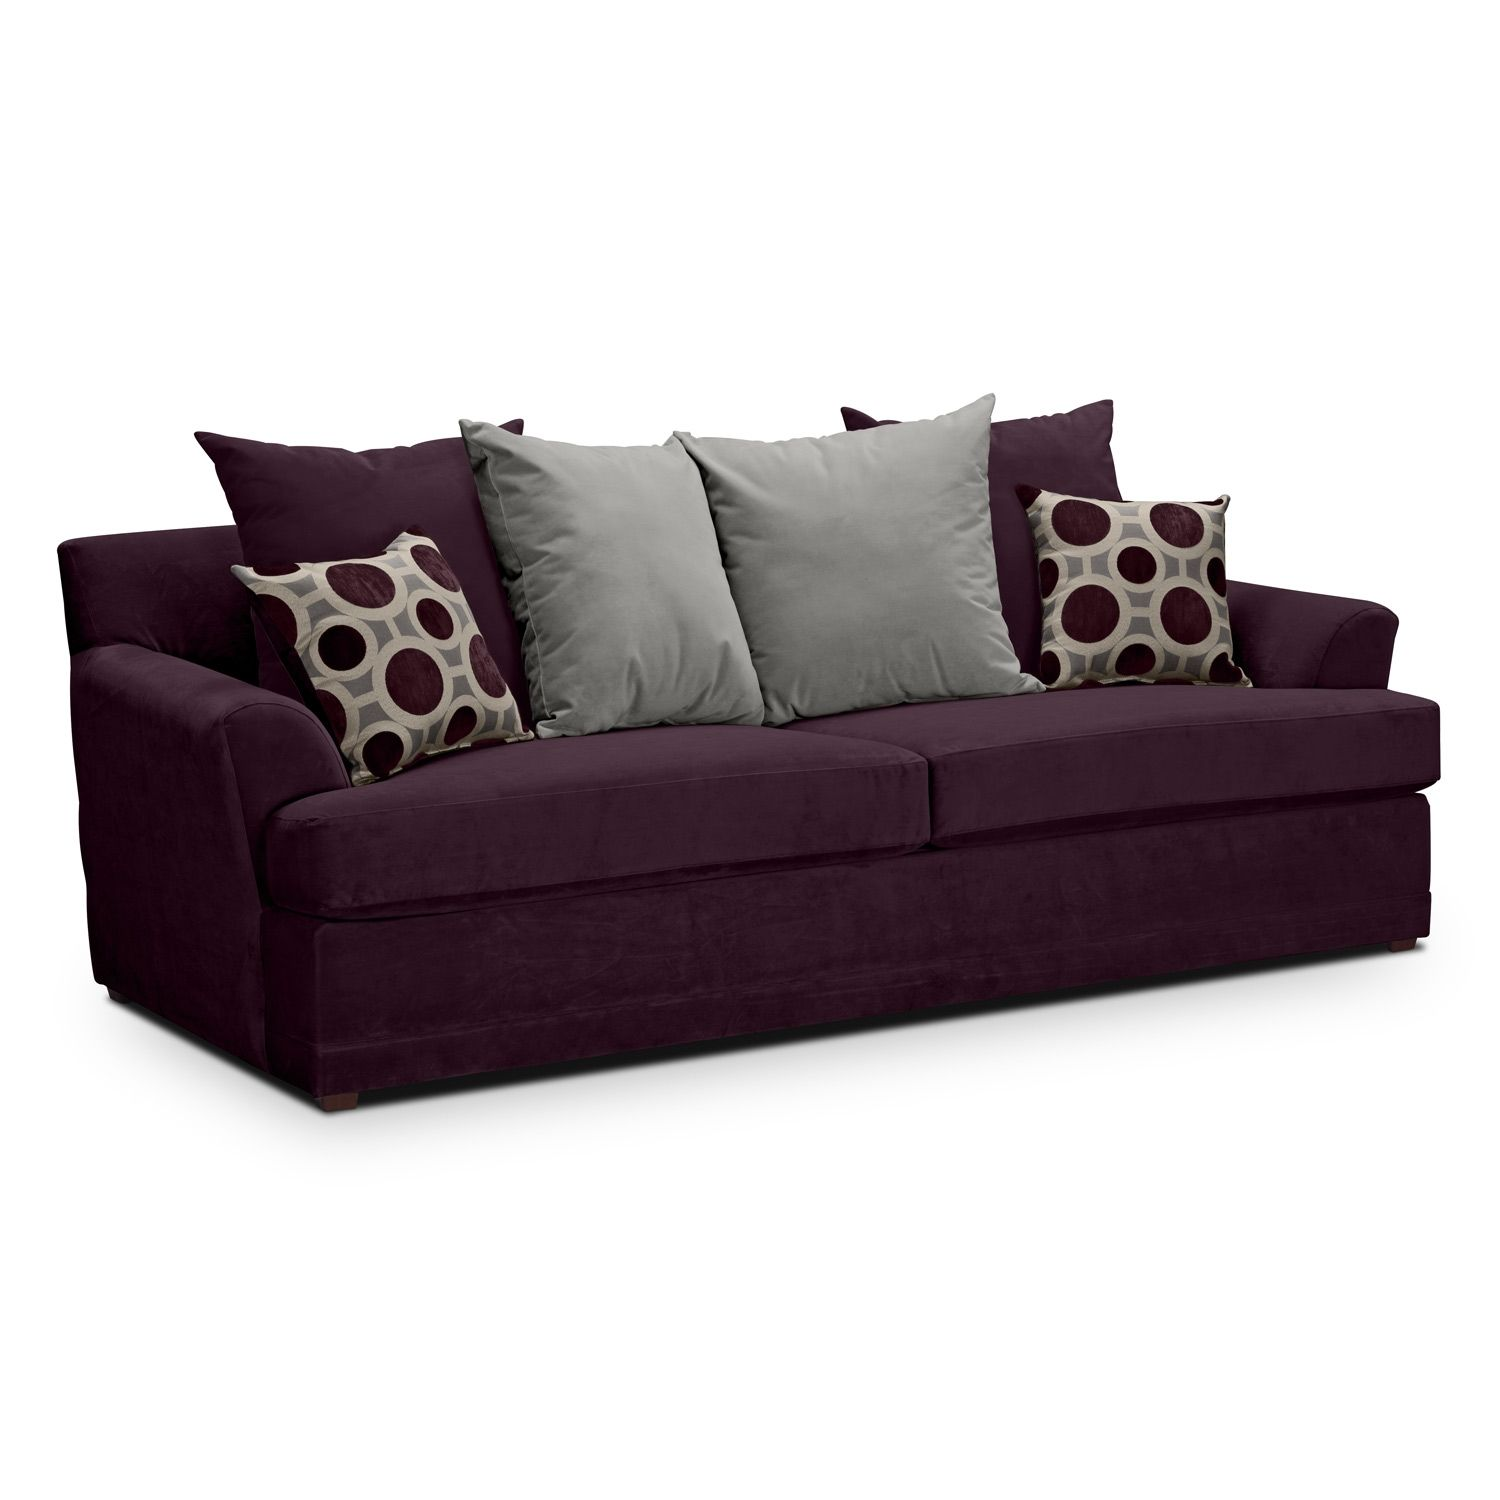 your drawing living loveseat colour sofa how a to decor cute couch room and purple grey velvet lavender plum match